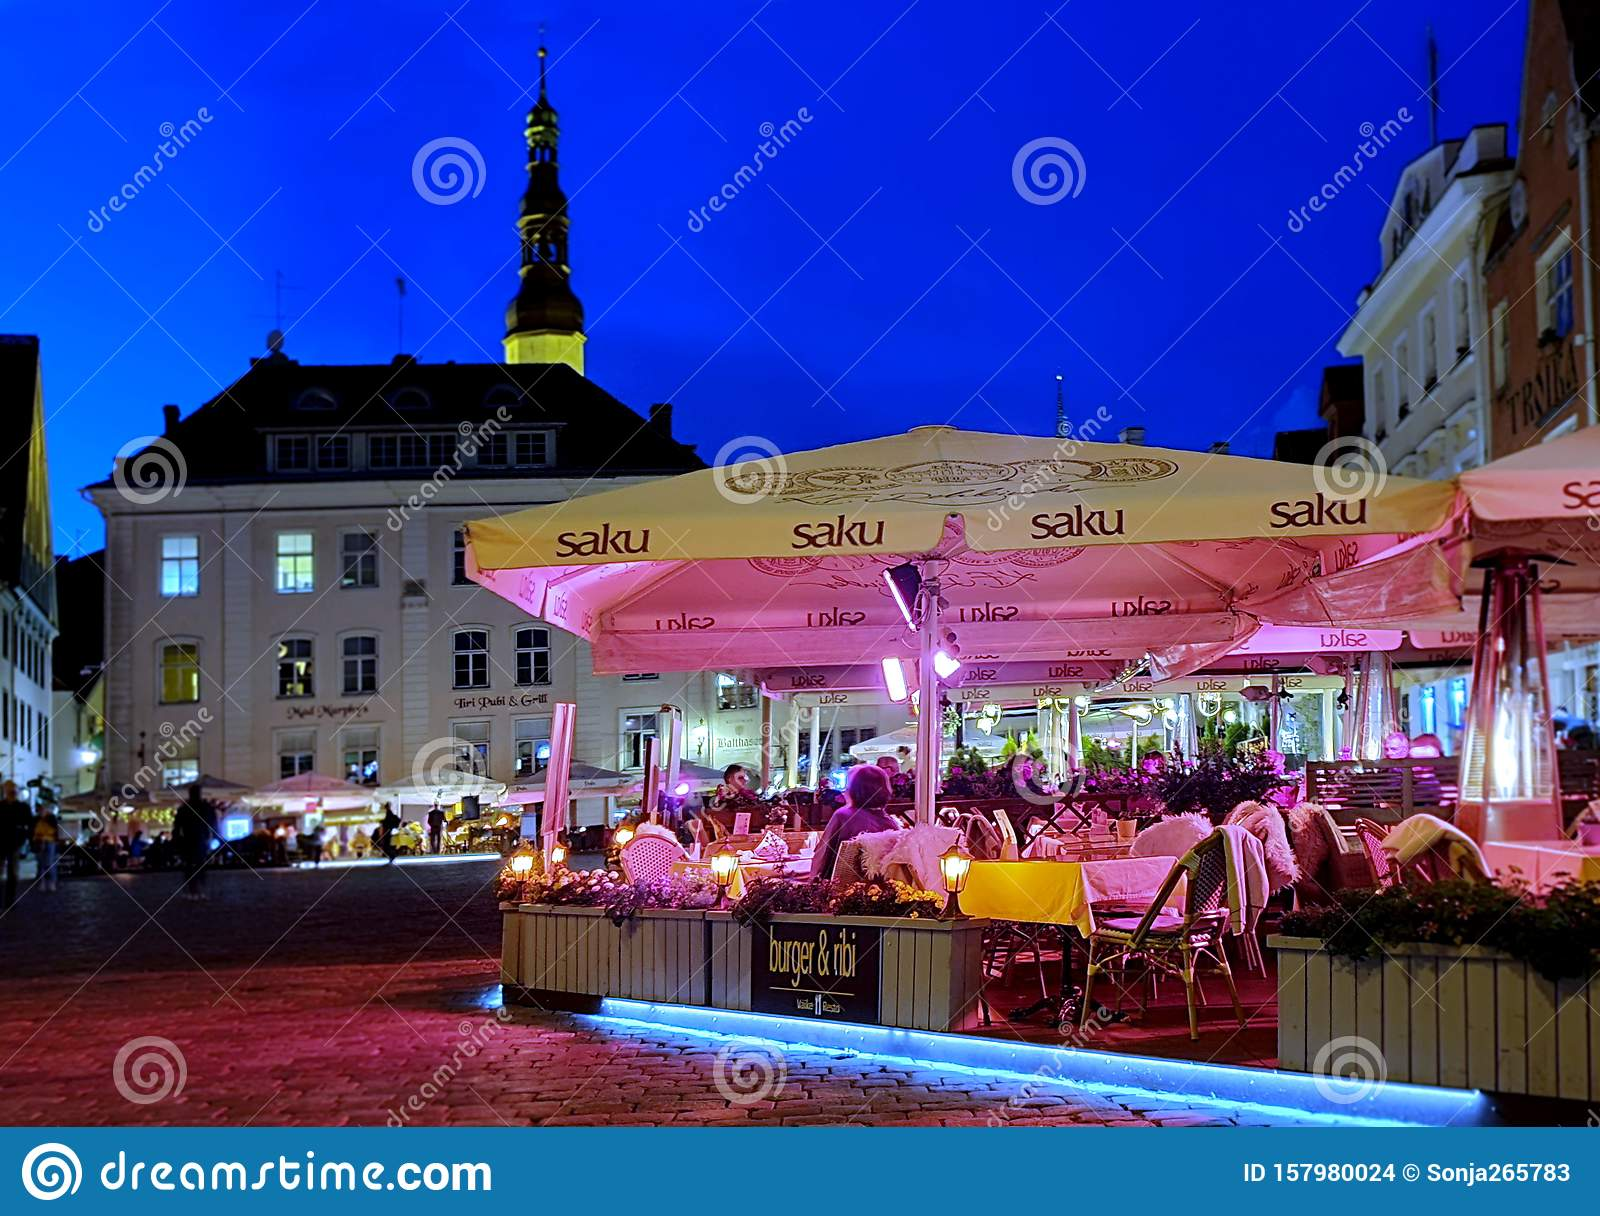 City Night Life Street Cafe Tables People Dinner Pink Light On Table Lifestyle Travel Restaurant City Light Old Town Tallinn Editorial Stock Image Image Of Night Lifestyle 157980024